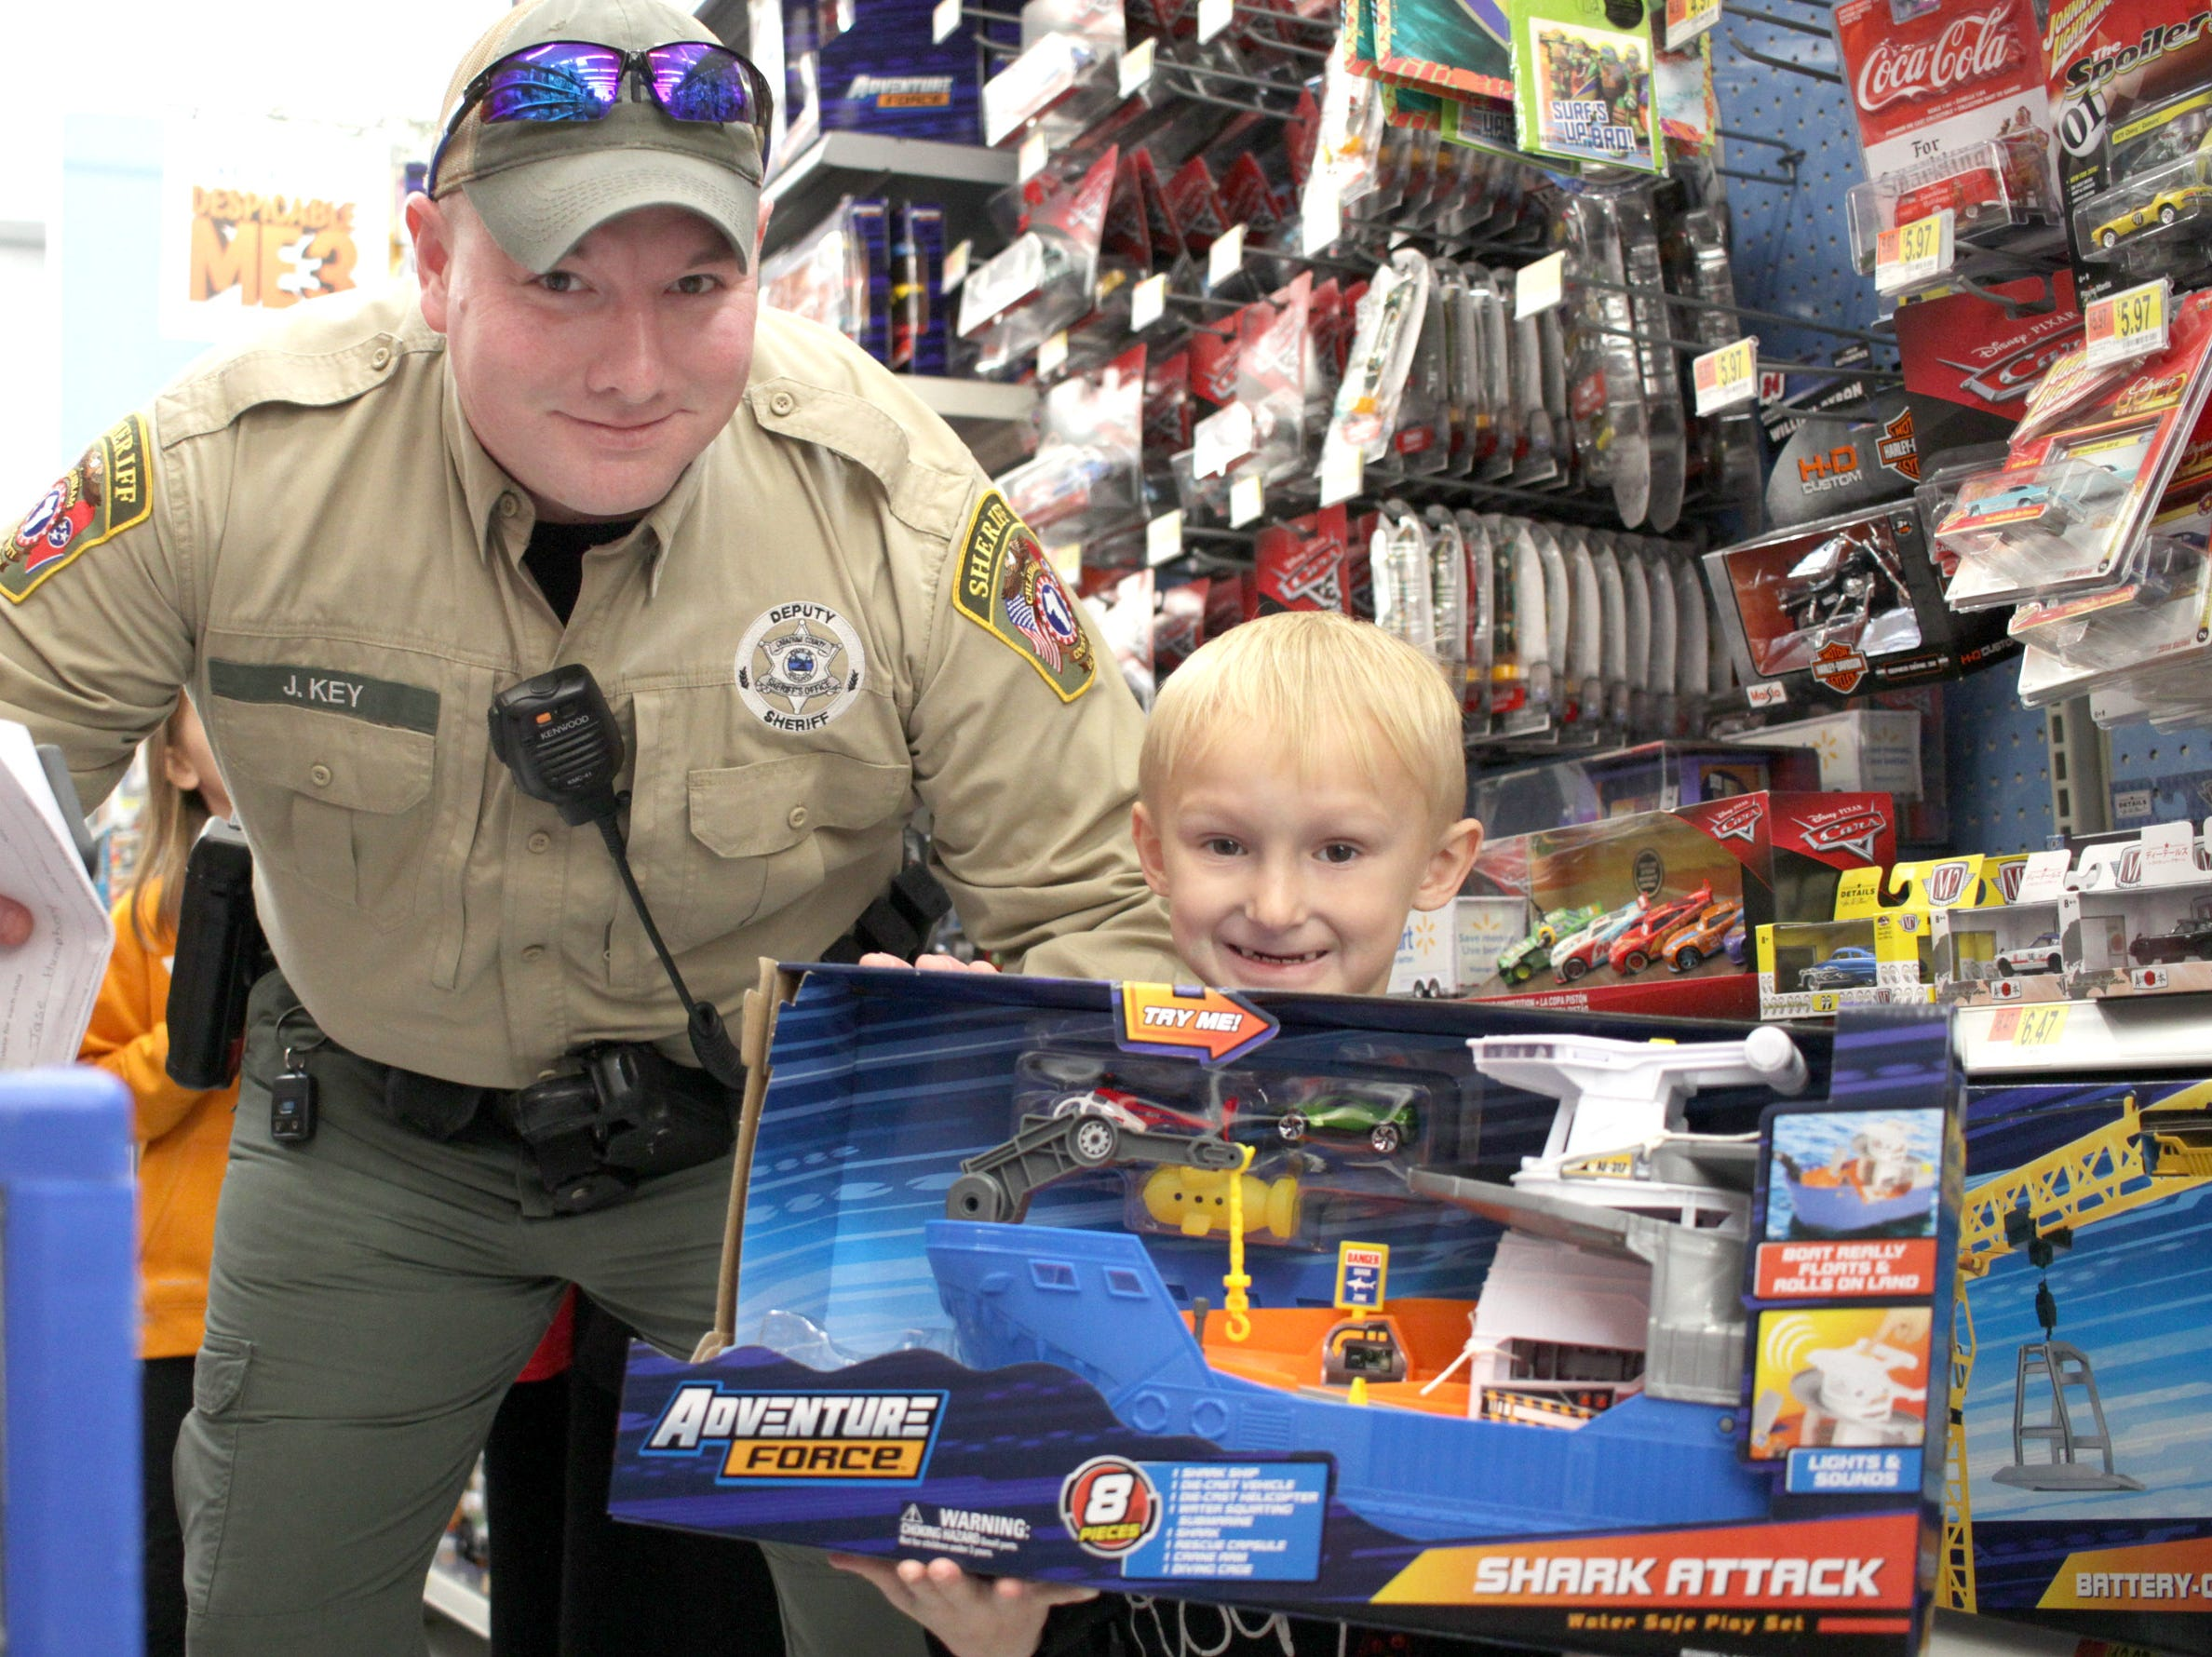 Officer Jeff Key shops with Jase Humphrey (5) during Shop with a Cop in Ashland City, TN on Saturday, December 15, 2018.